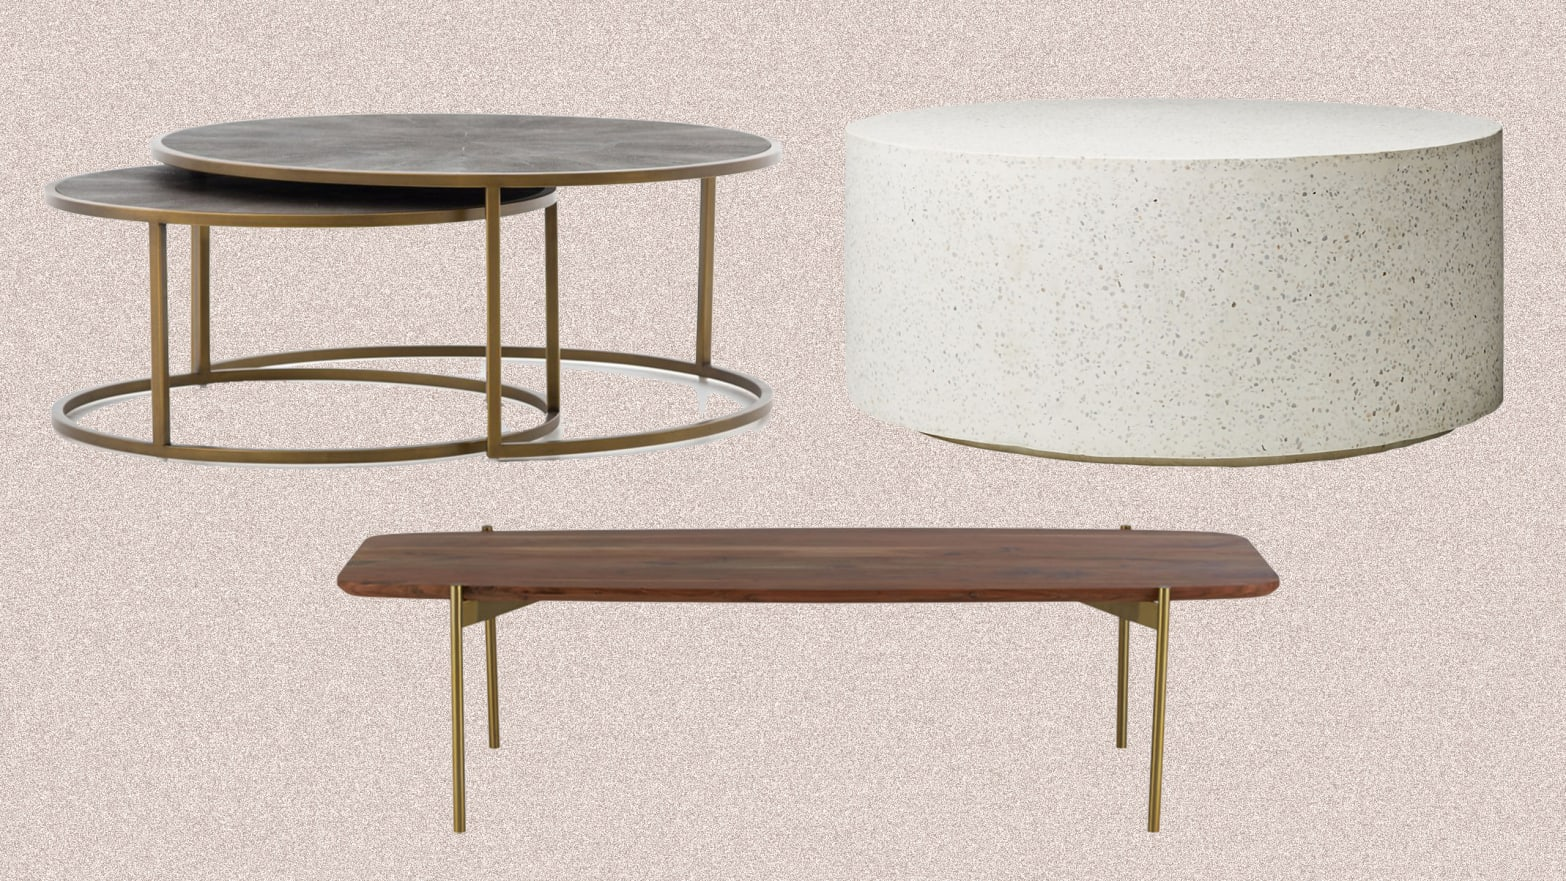 Round Rectangle And Other Coffee Tables That Work Best For Your Size Couch